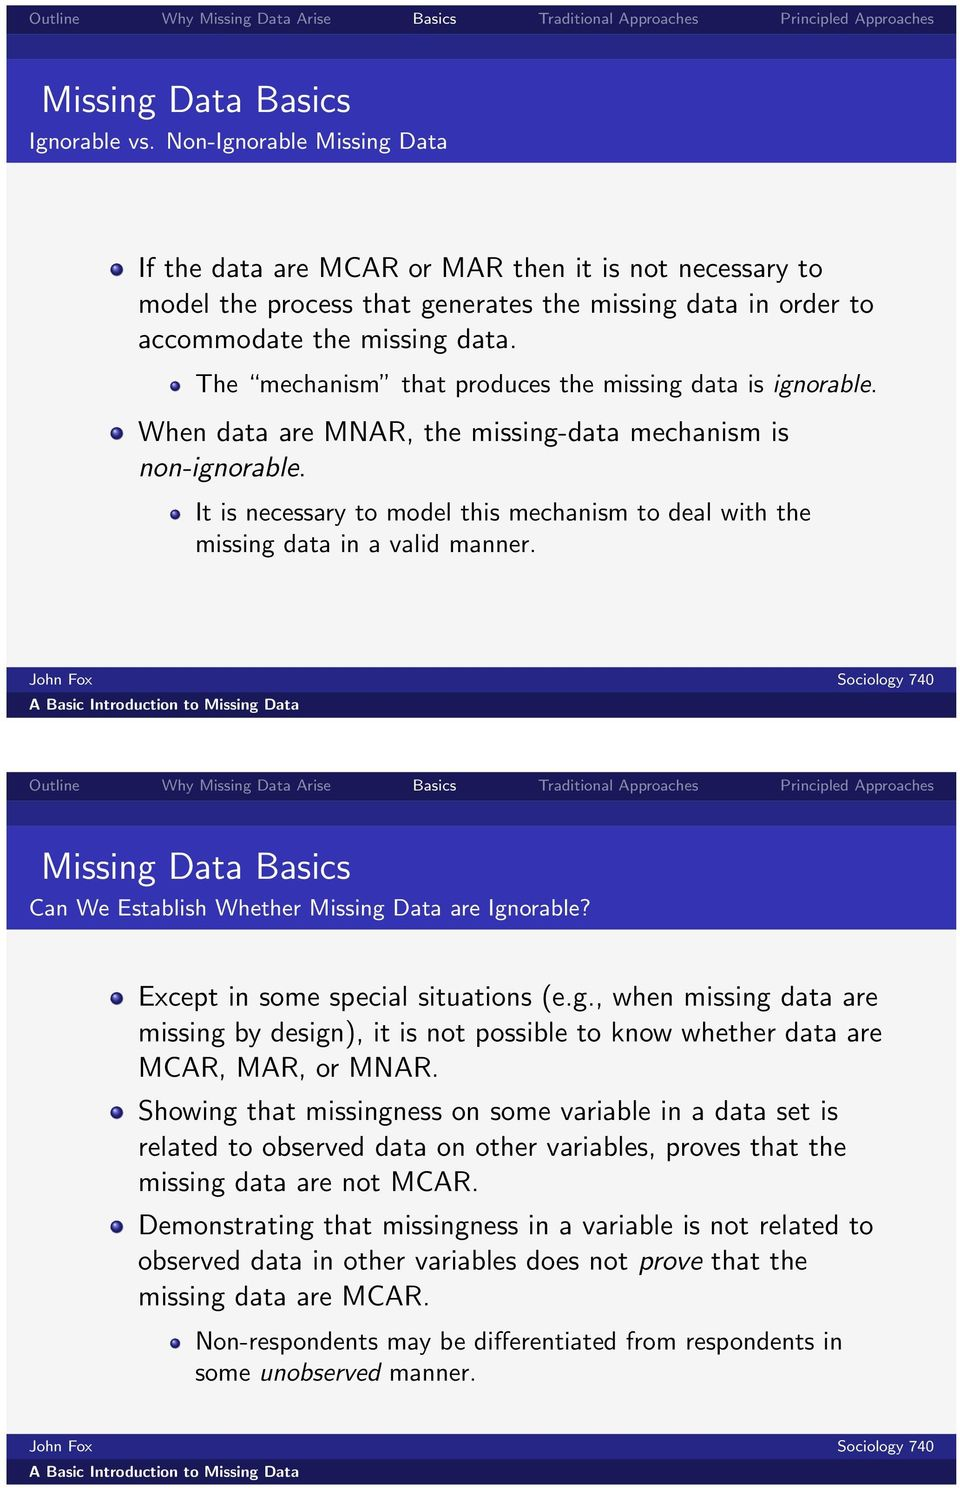 It is necessary to model this mechanism to deal with the missing data in a valid manner. Can We Establish Whether Missing Data are Ignorable? Except in some special situations (e.g., when missing data are missing by design), it is not possible to know whether data are MCAR, MAR, or MNAR.